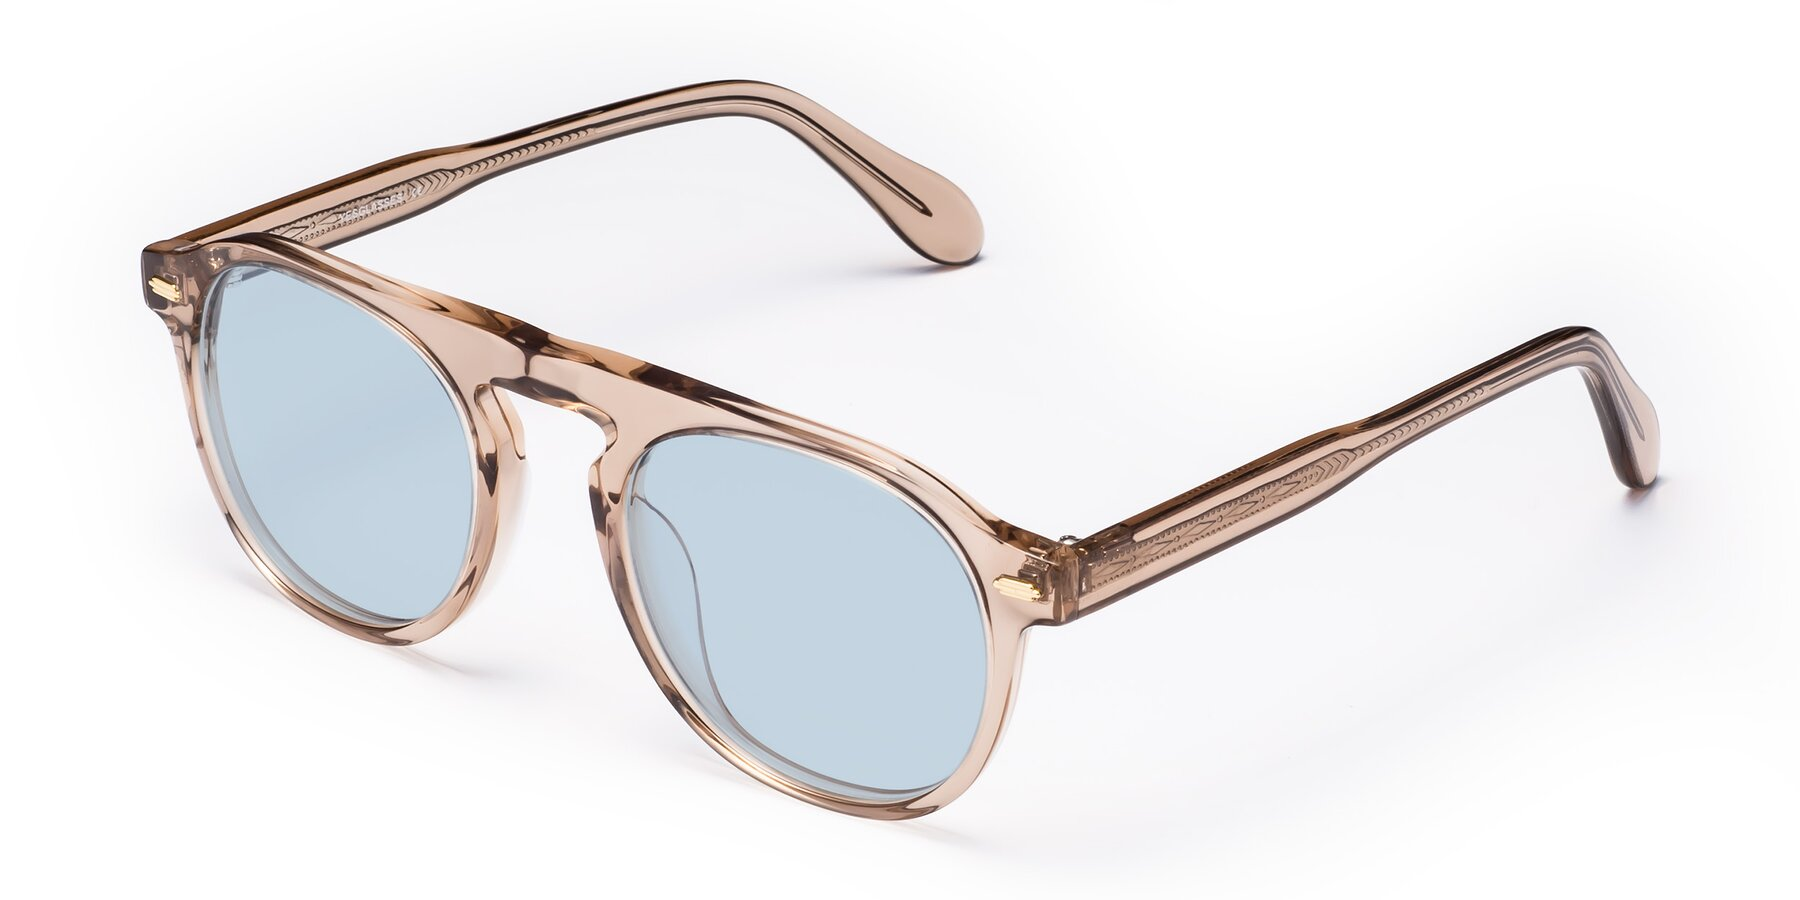 Angle of Mufasa in light Brown with Light Blue Tinted Lenses